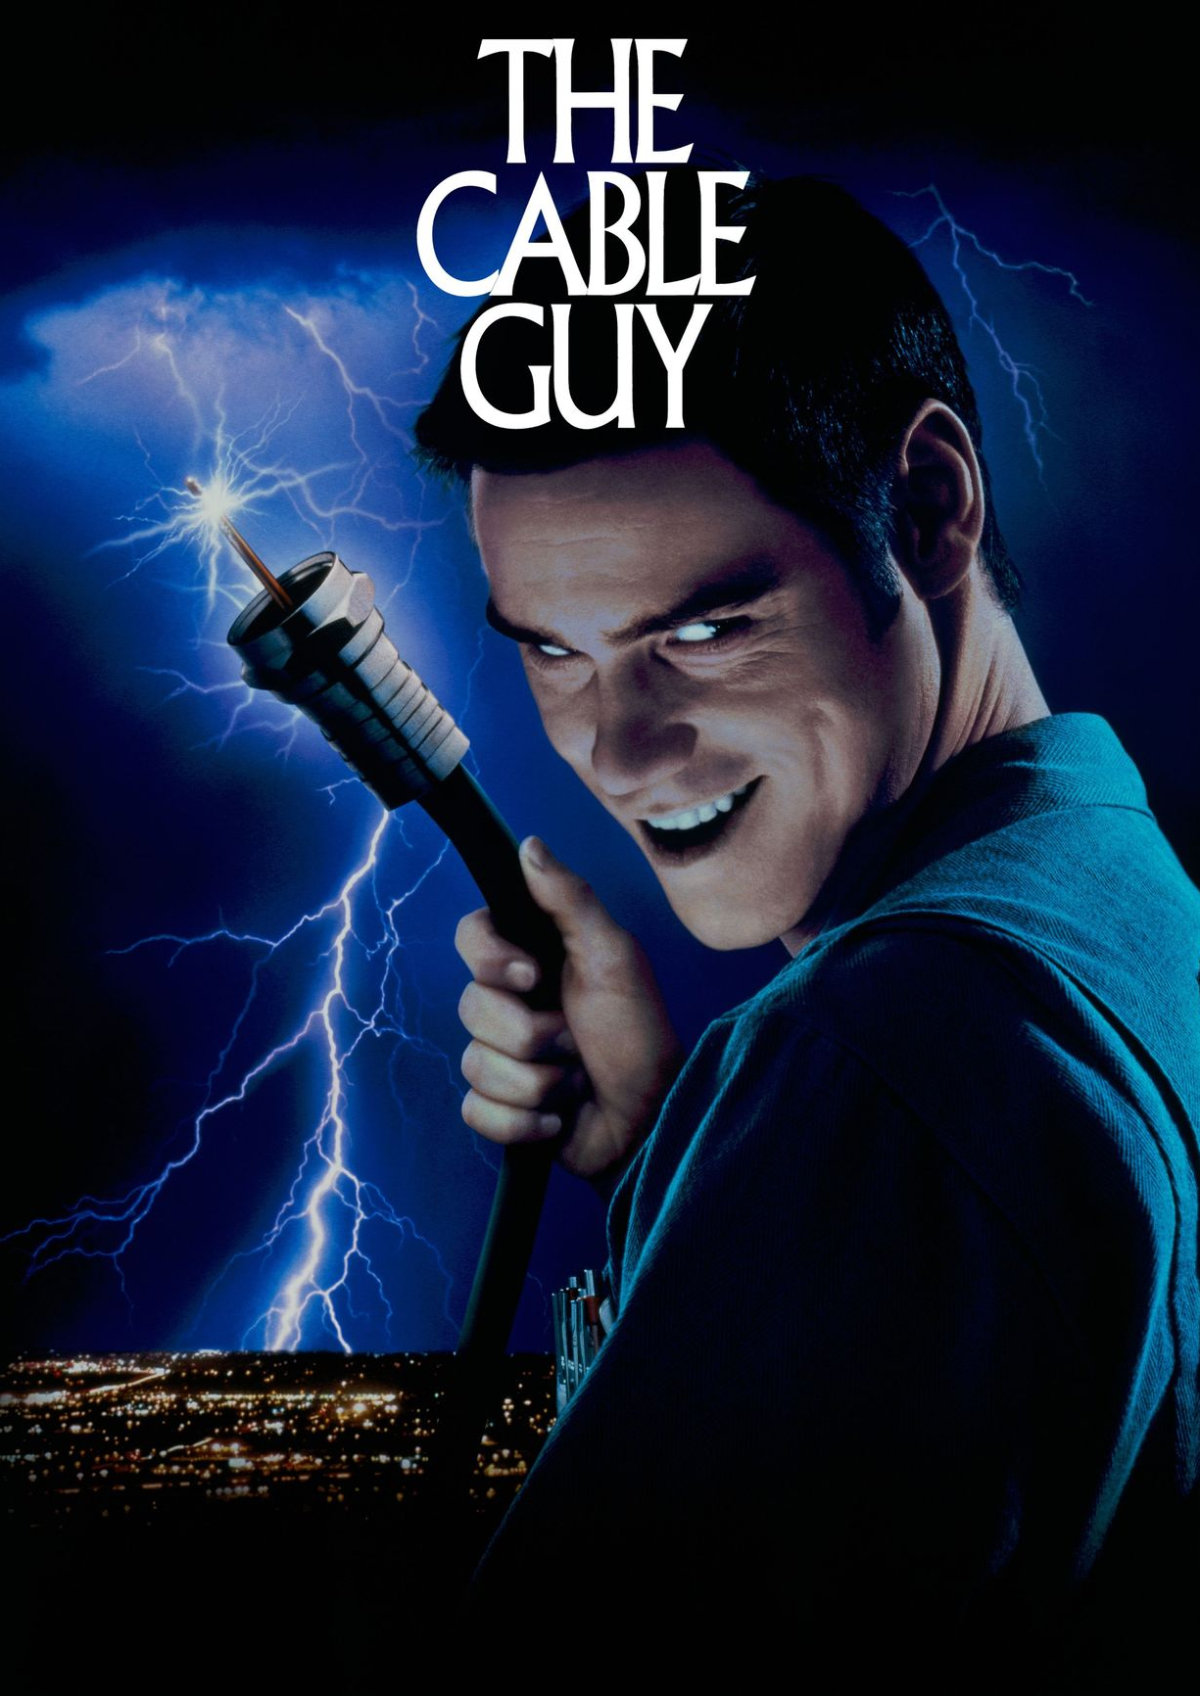 'The Cable Guy' movie poster